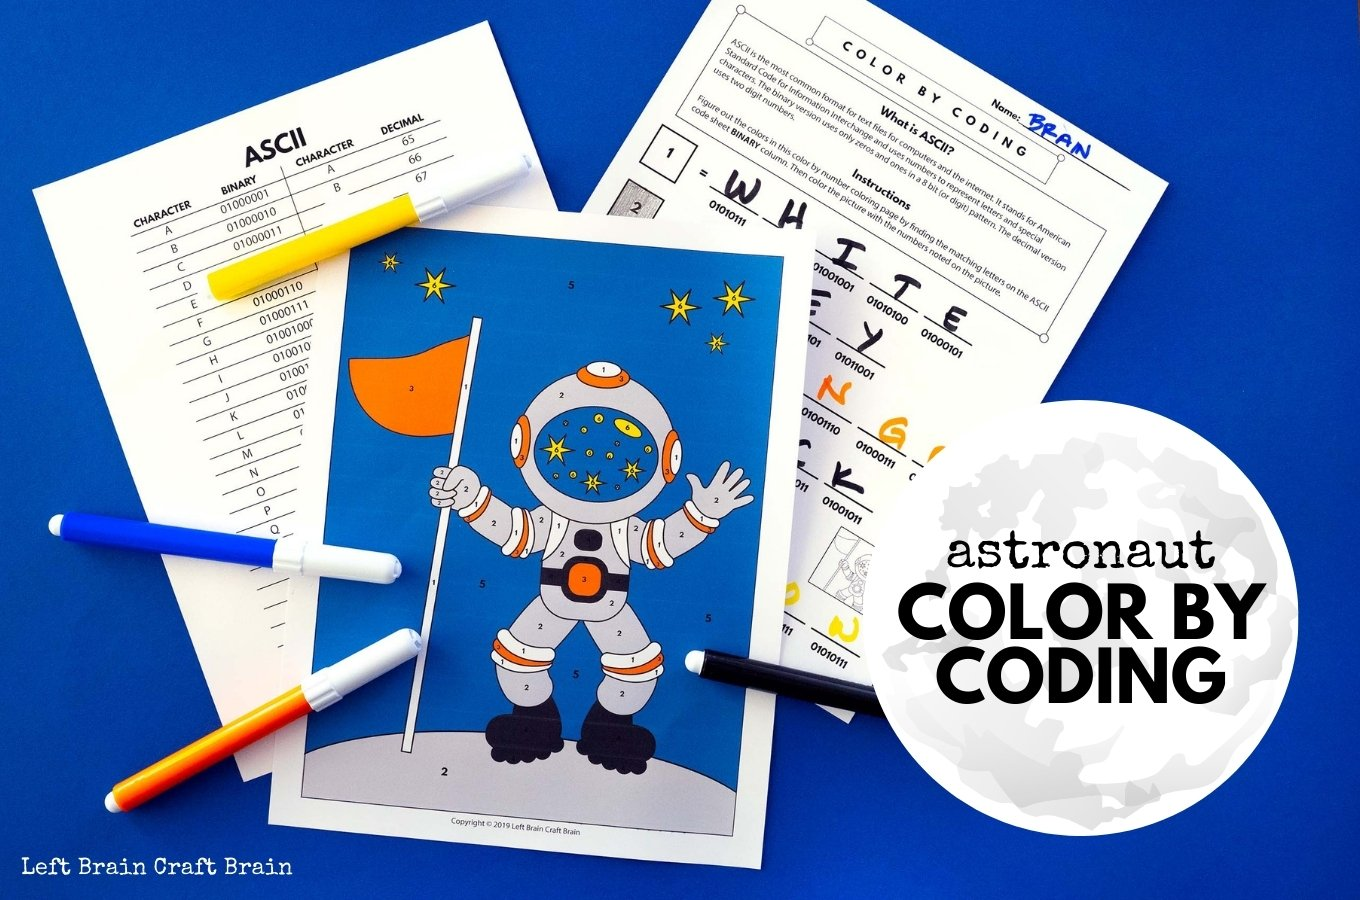 Astronaut Color by Coding 1360x900